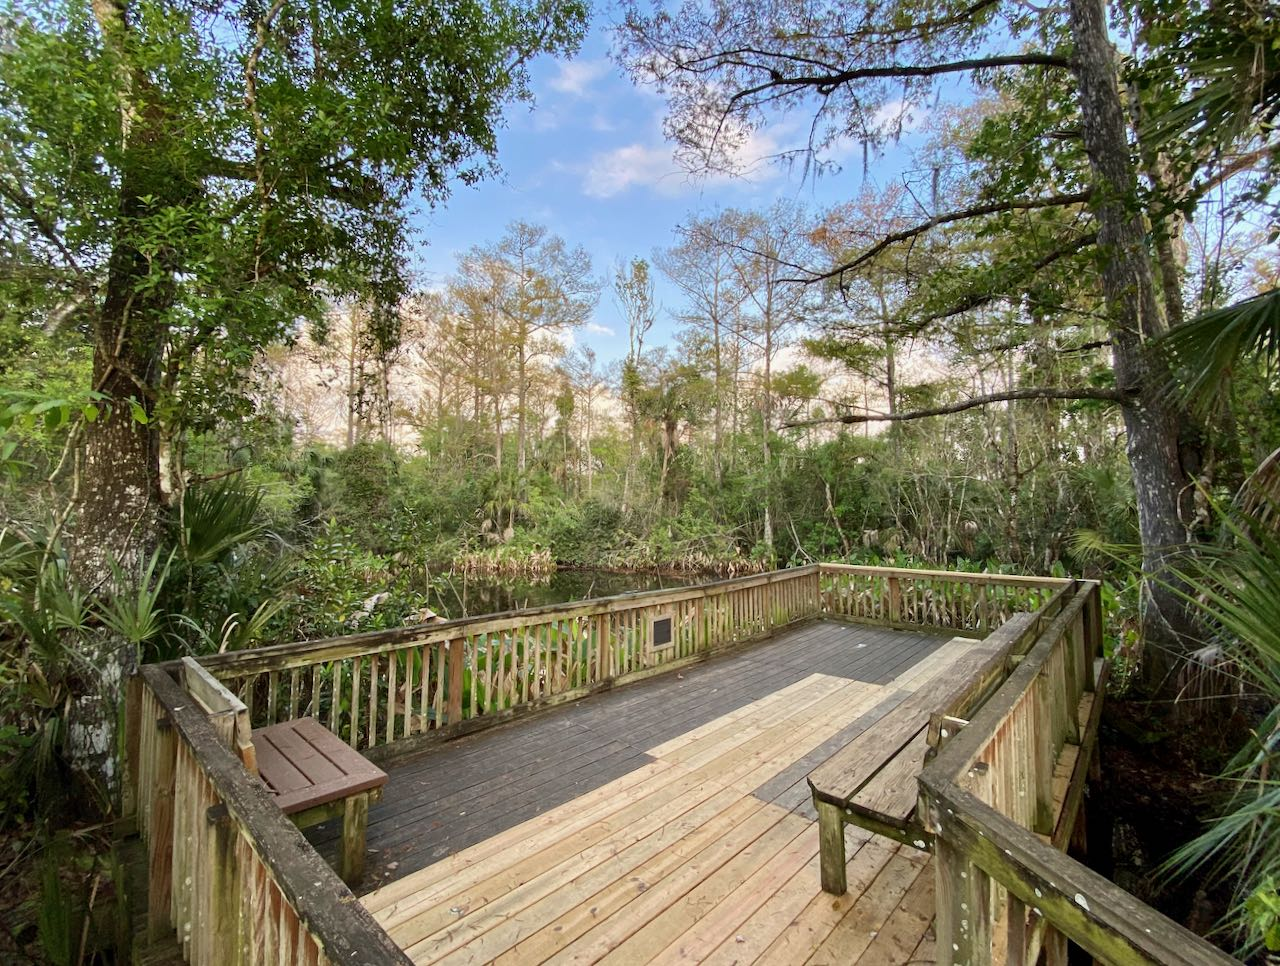 Big Cypress Bend Boardwalk Attractions and Places to Stop Along the Tamiami Trail/U.S. Highway 41